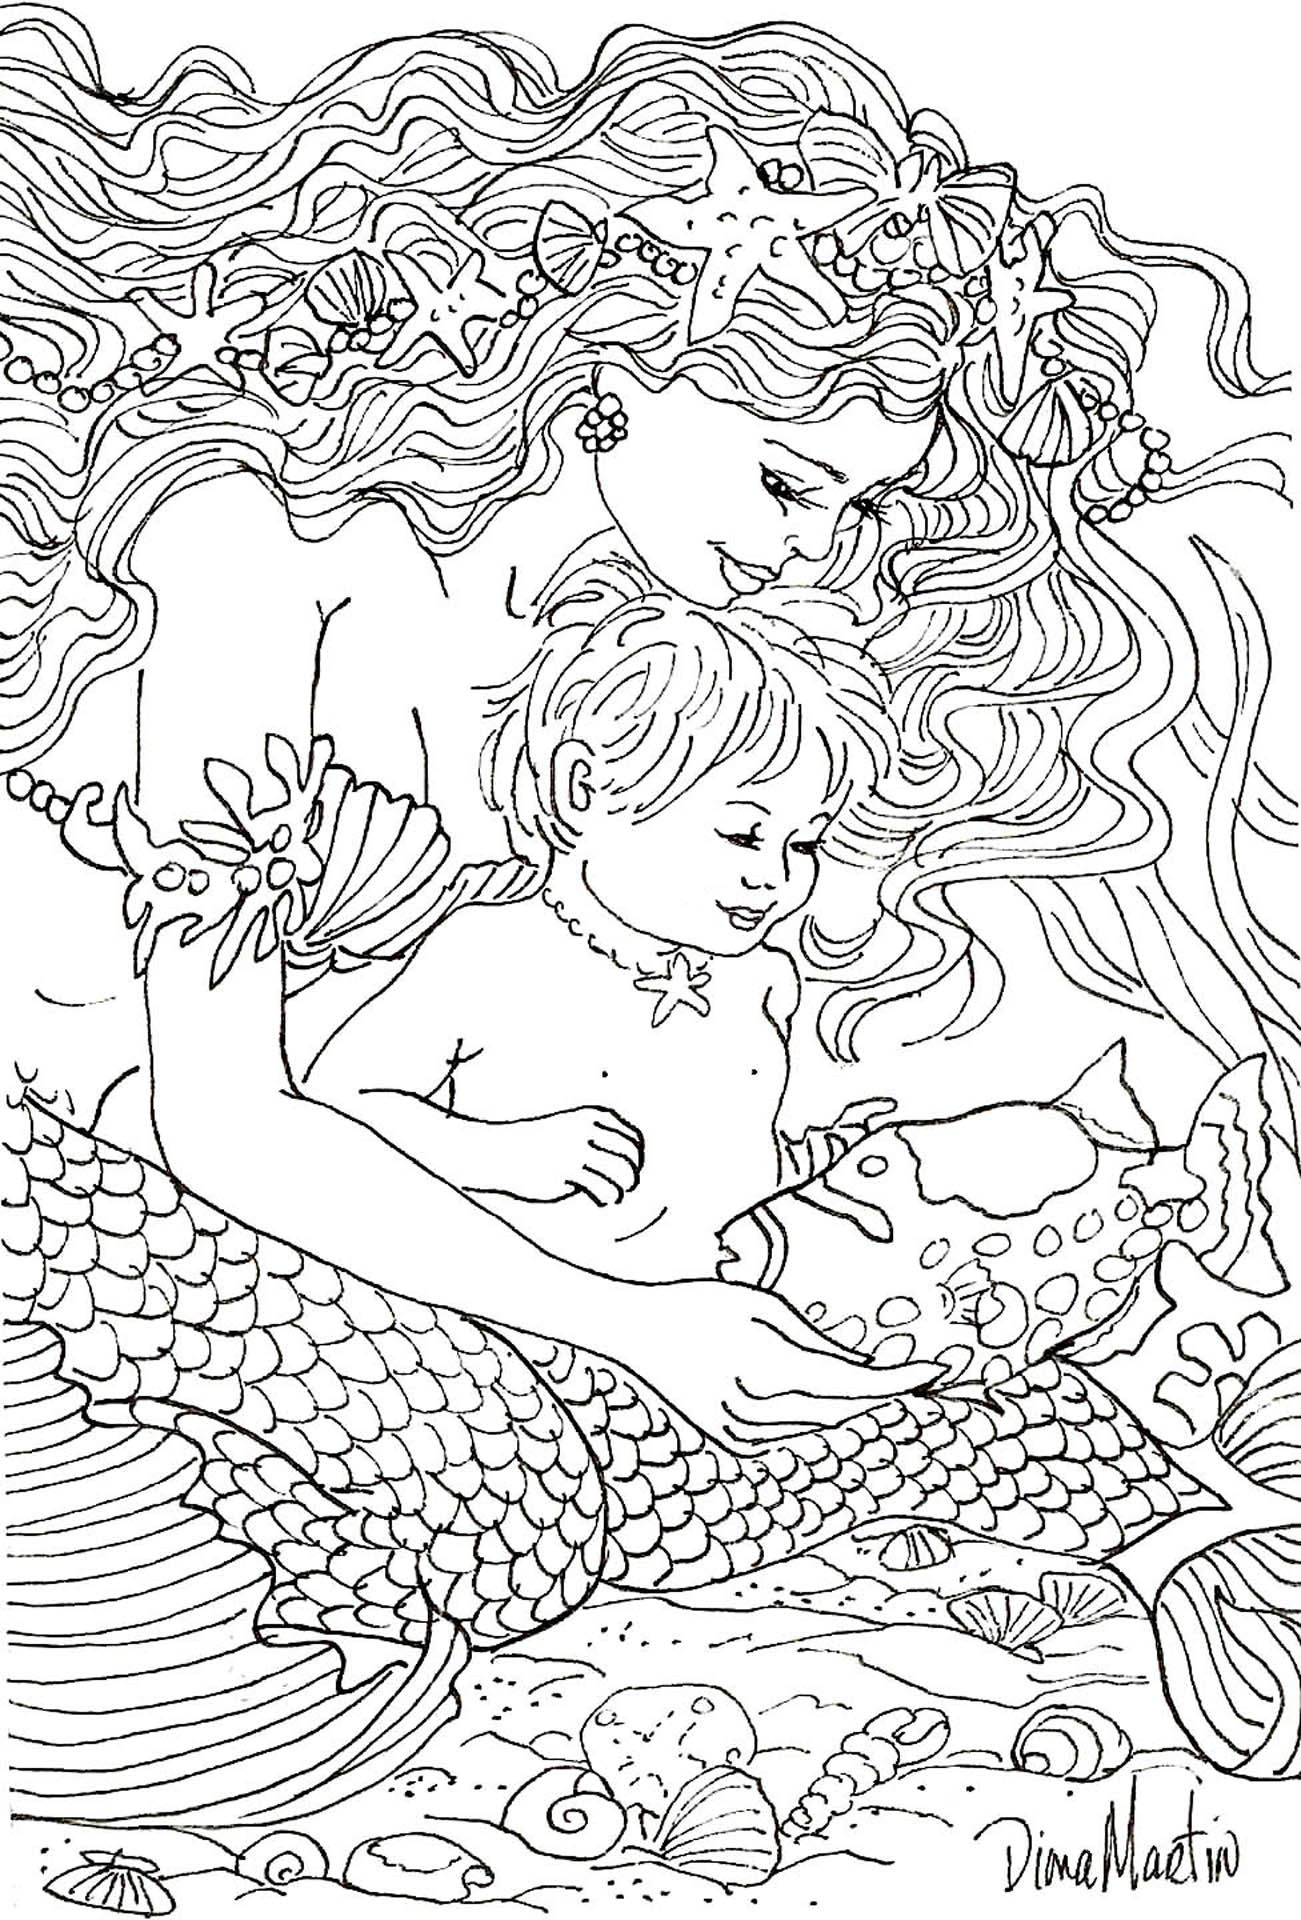 Making New Friends Mermaid Coloring Pages Mermaid Coloring Coloring Pages